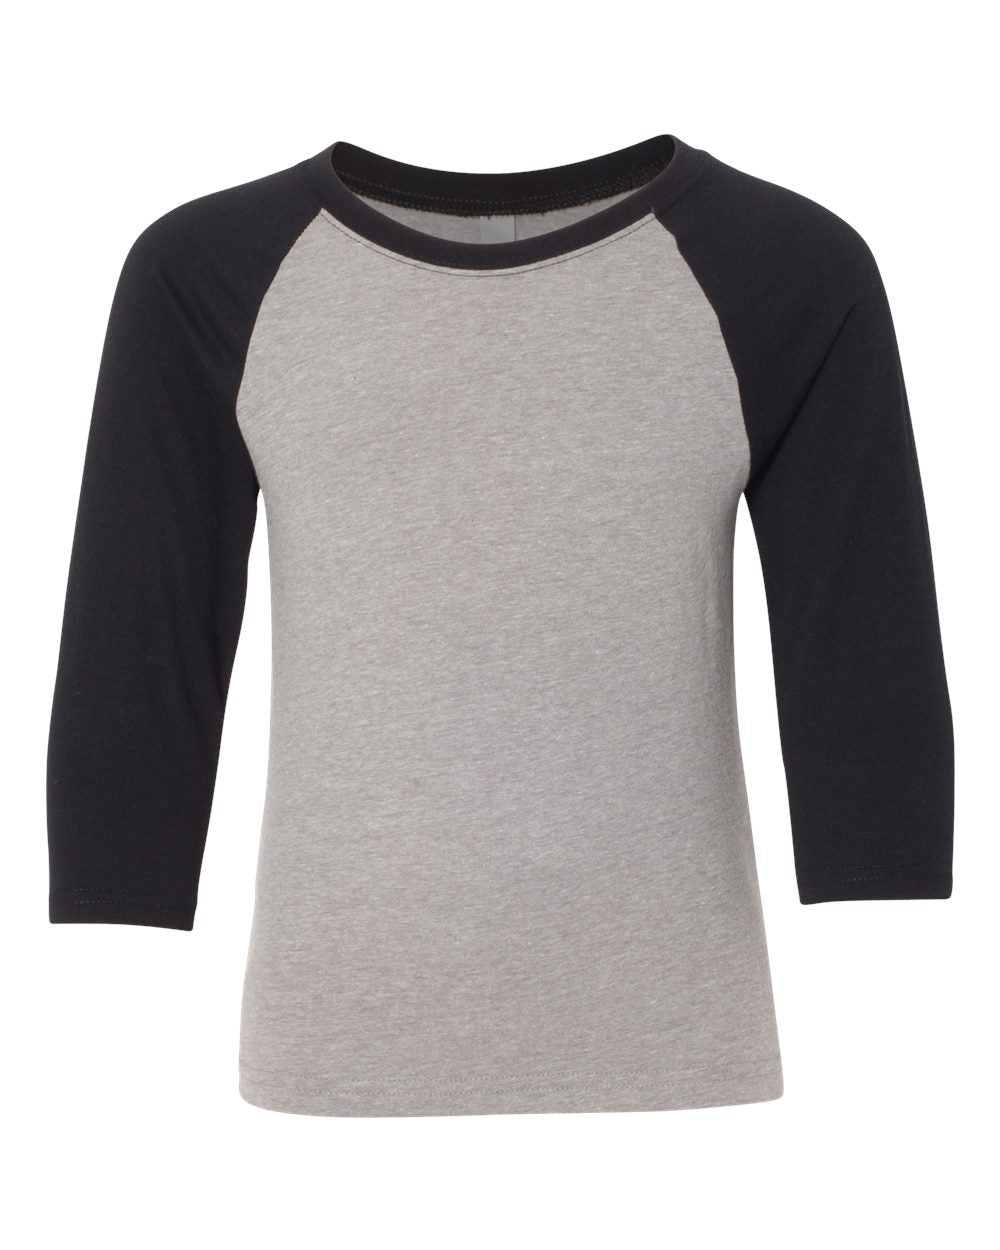 Youth CVC Three-Quarter Sleeve Raglan T-Shirt